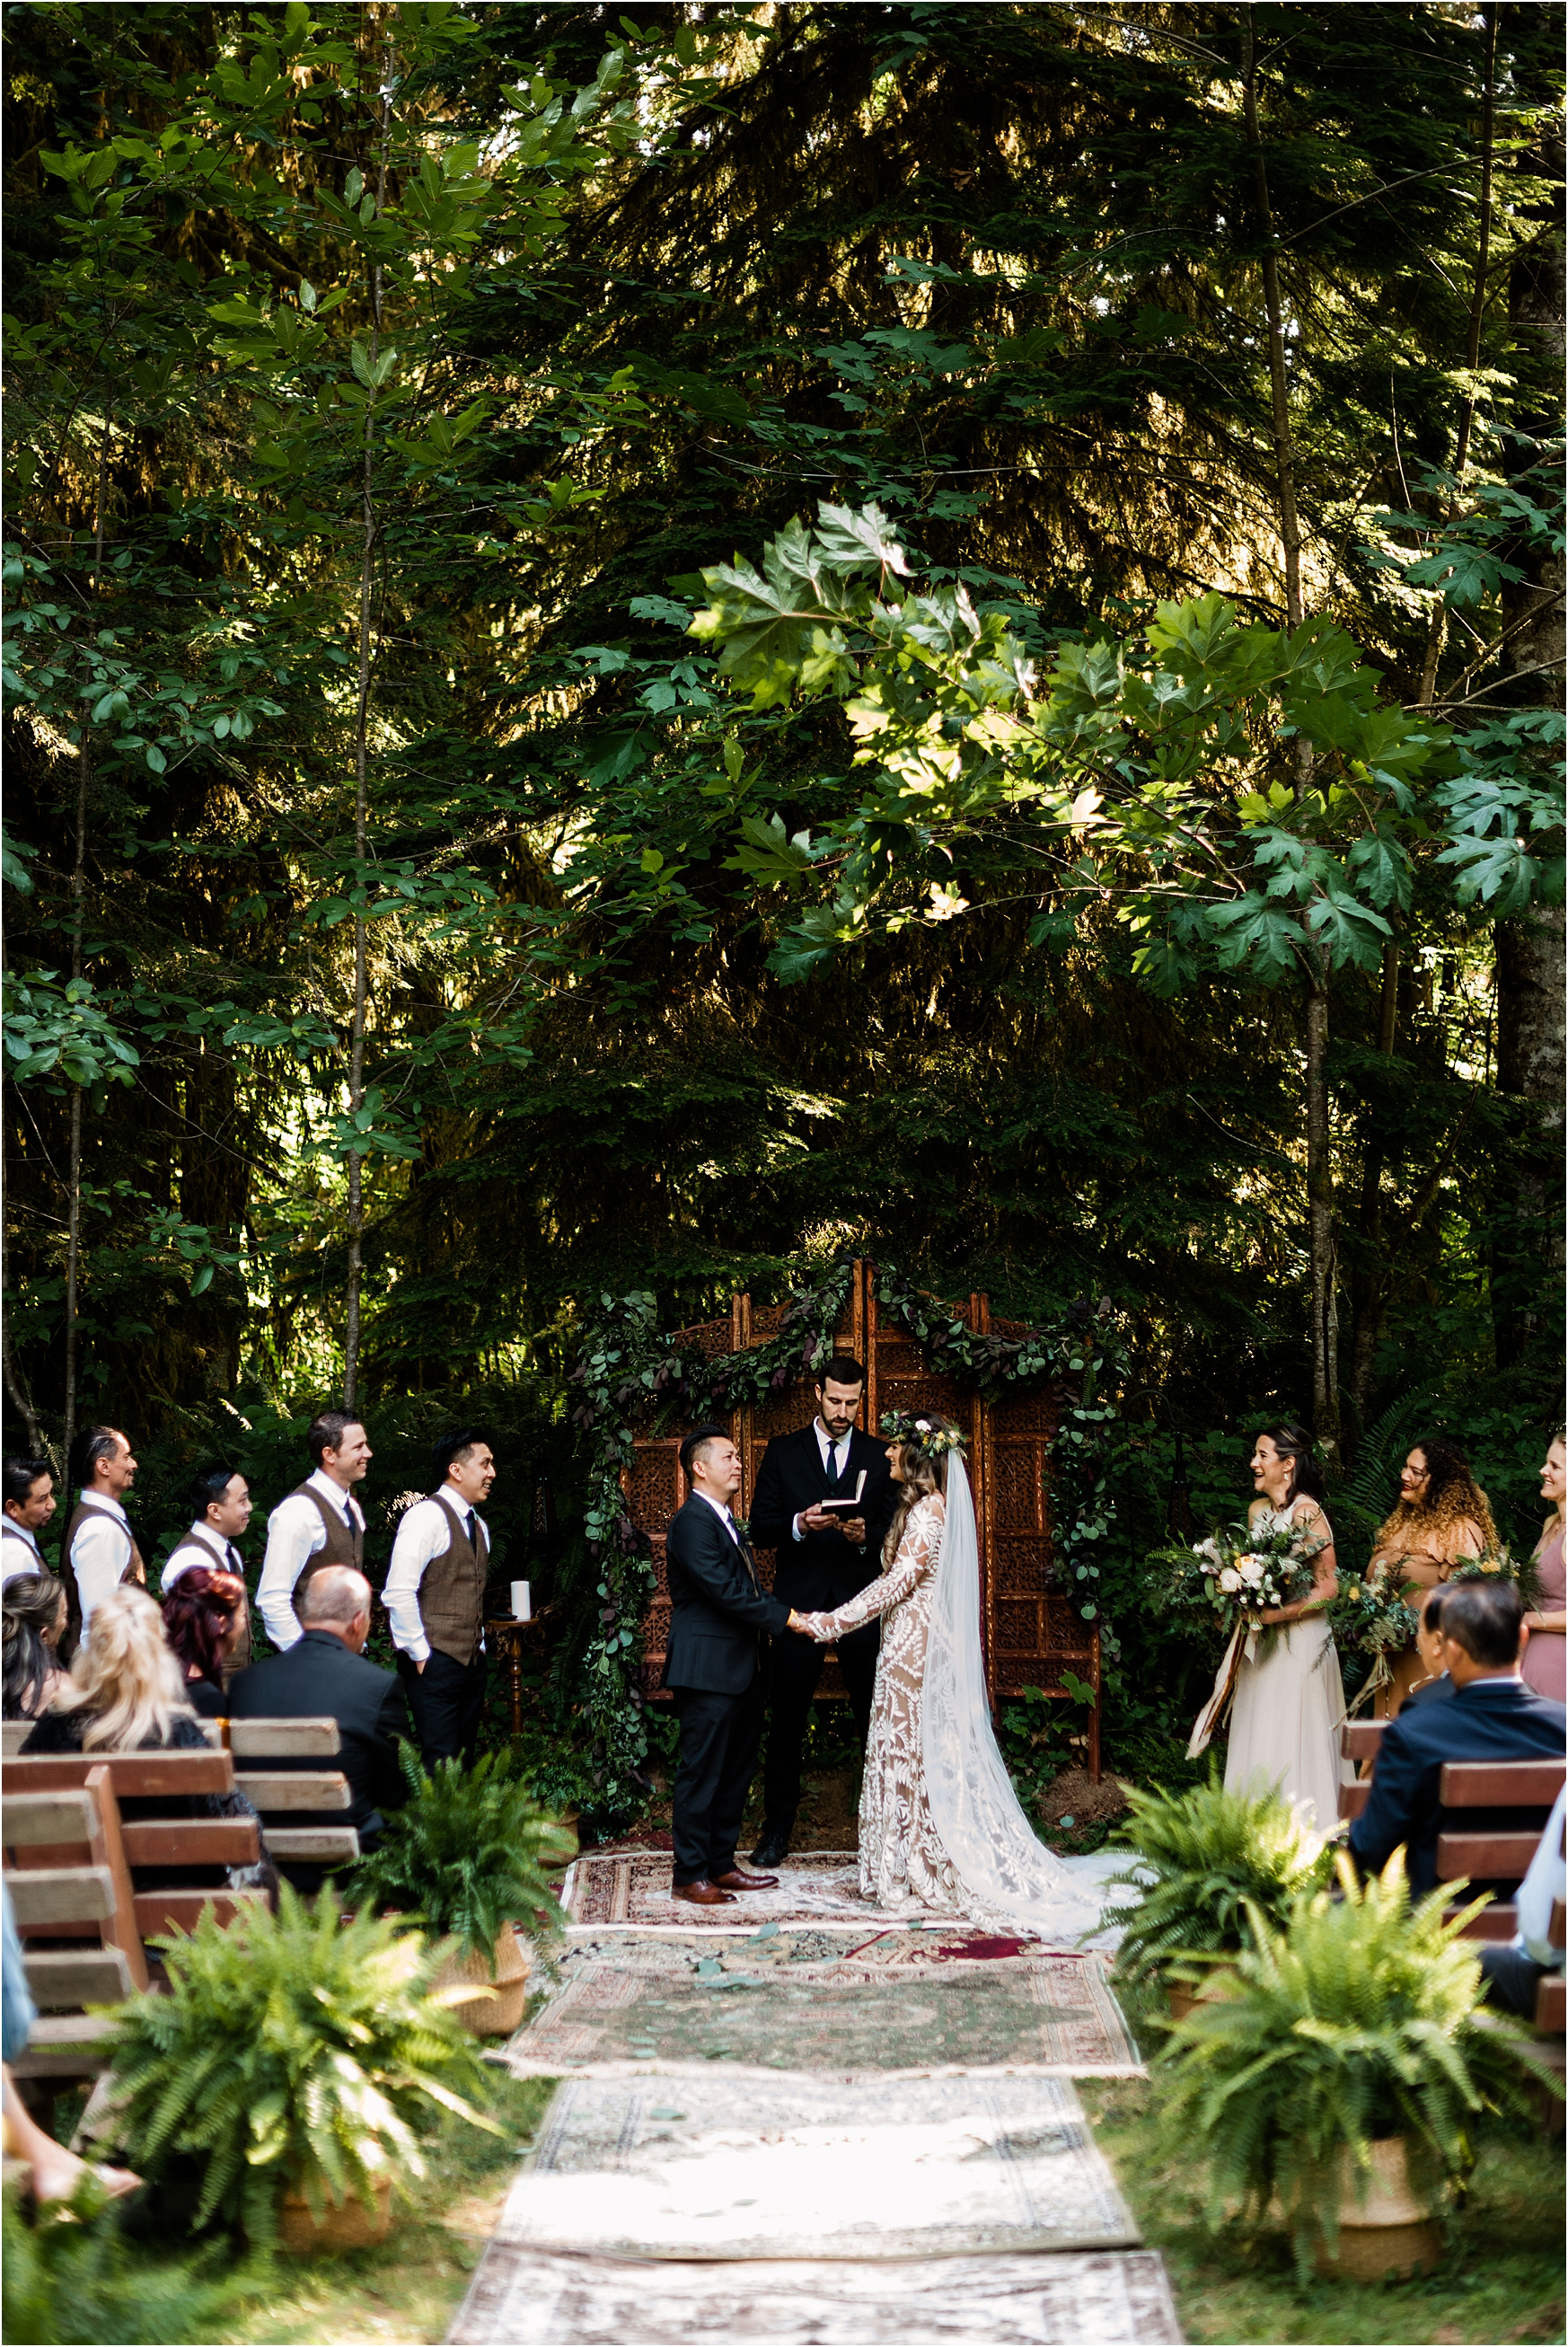 Ceremony at Cassy & Viva's bohemian Oregon destination wedding at Camp Lane. Image by Forthright Photo.